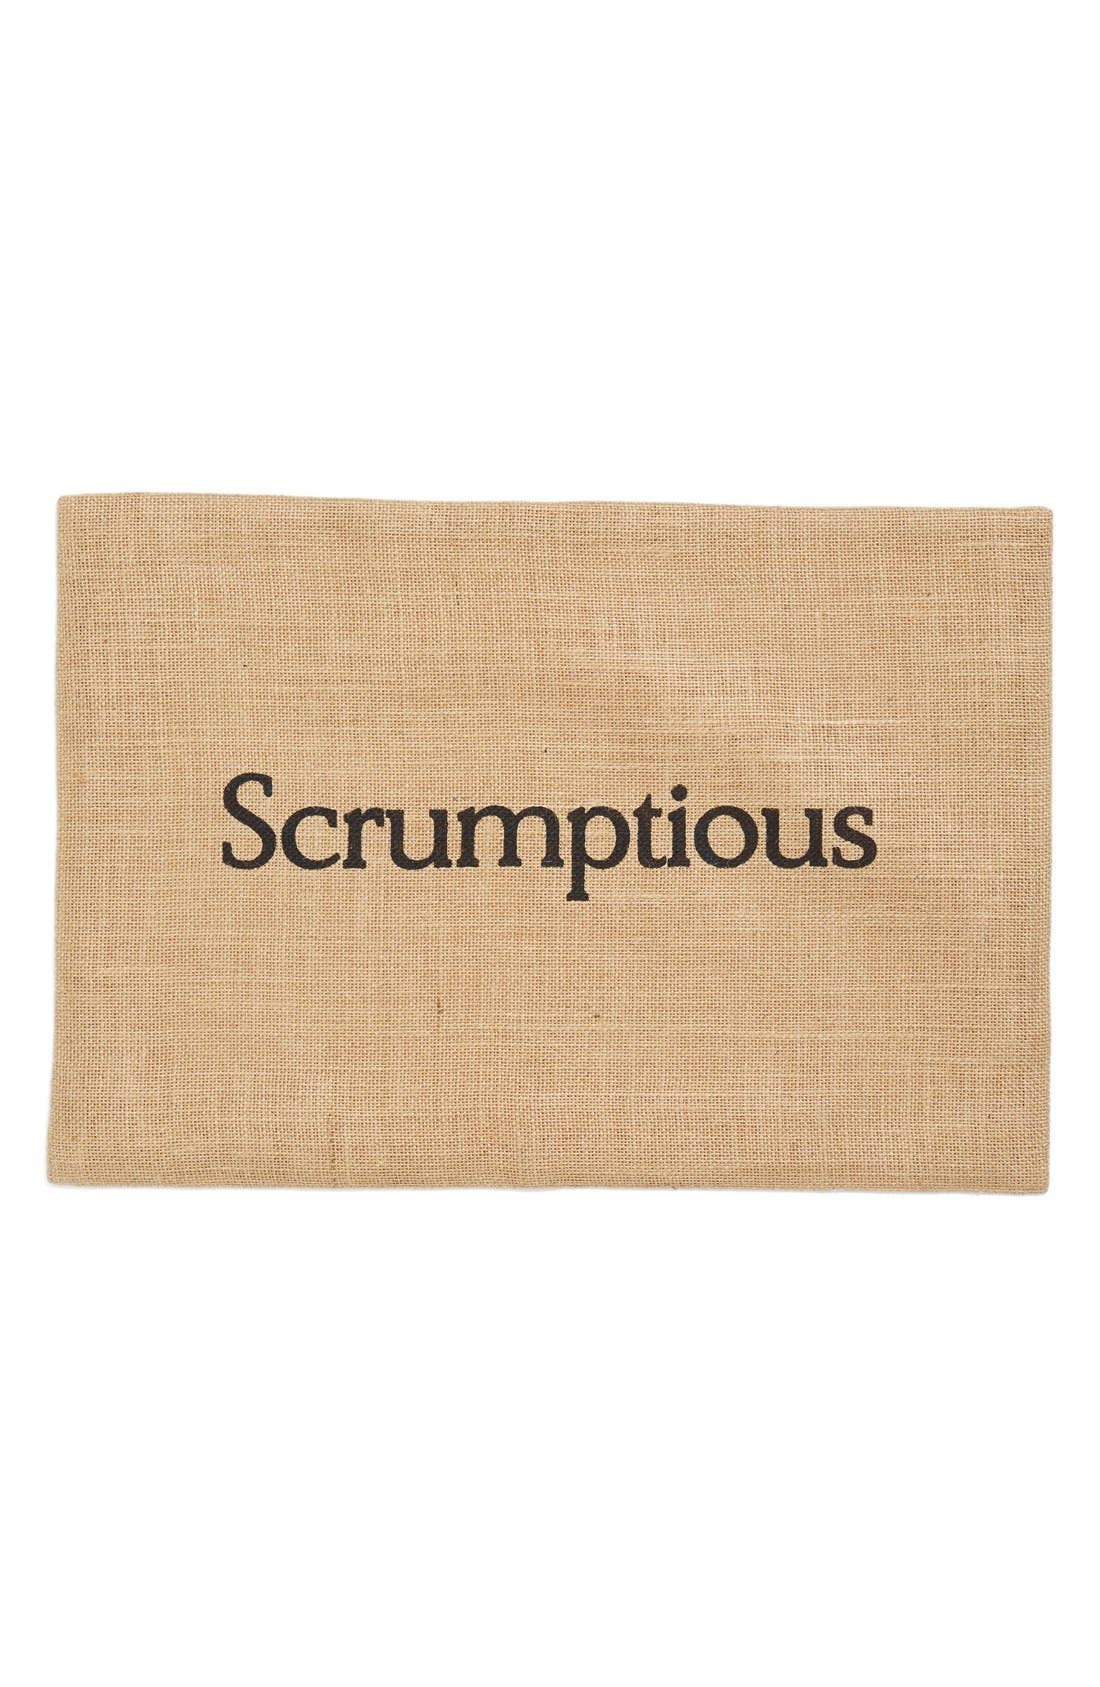 Alternate Image 1 Selected - Design Imports 'Scrumptious' Placemat